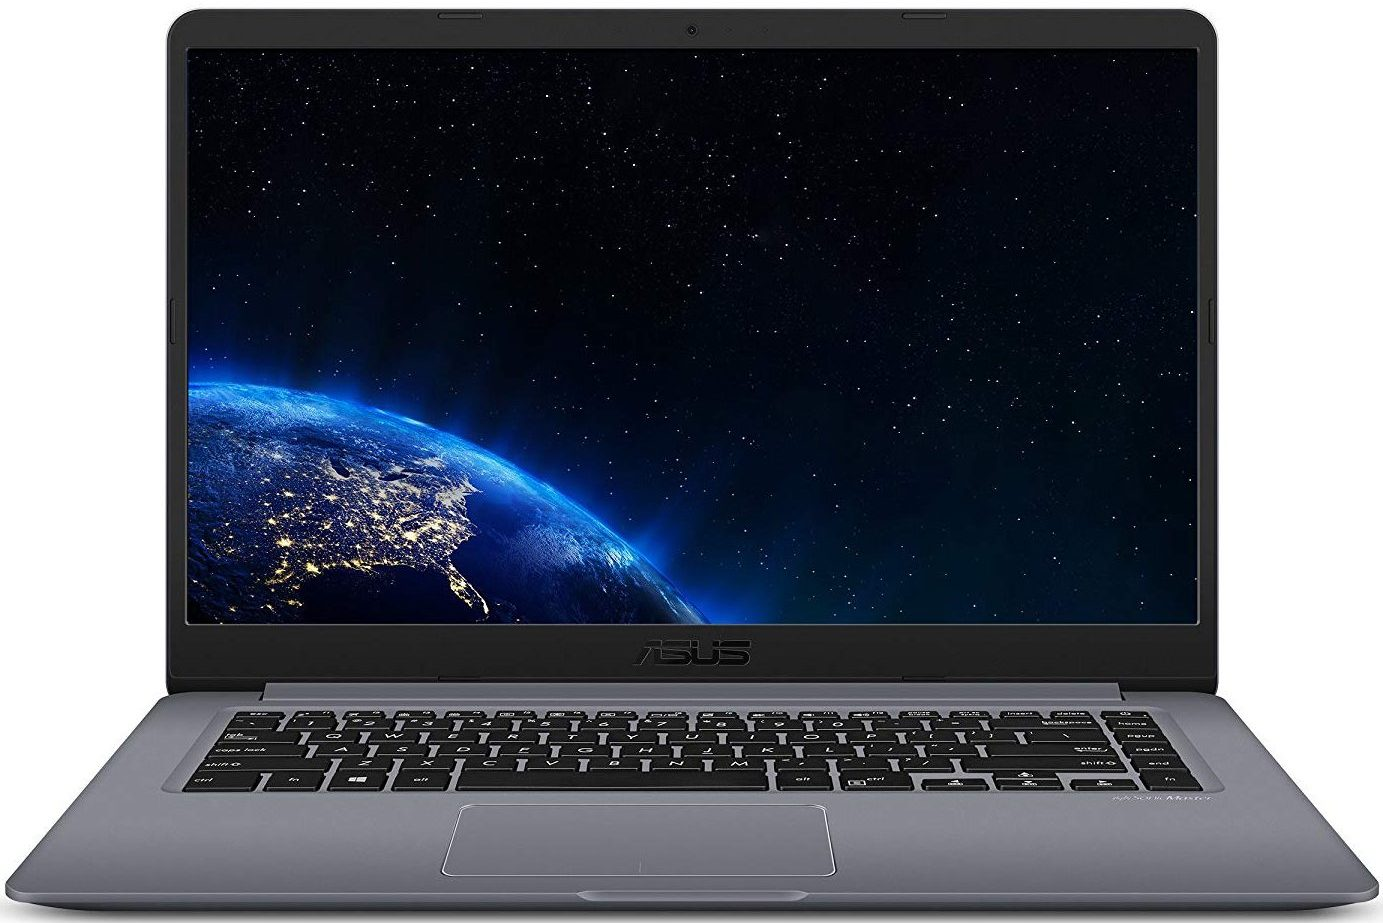 ASUS VivoBook 15 X510UQ Thin and Lightweight FHD Gaming Laptop